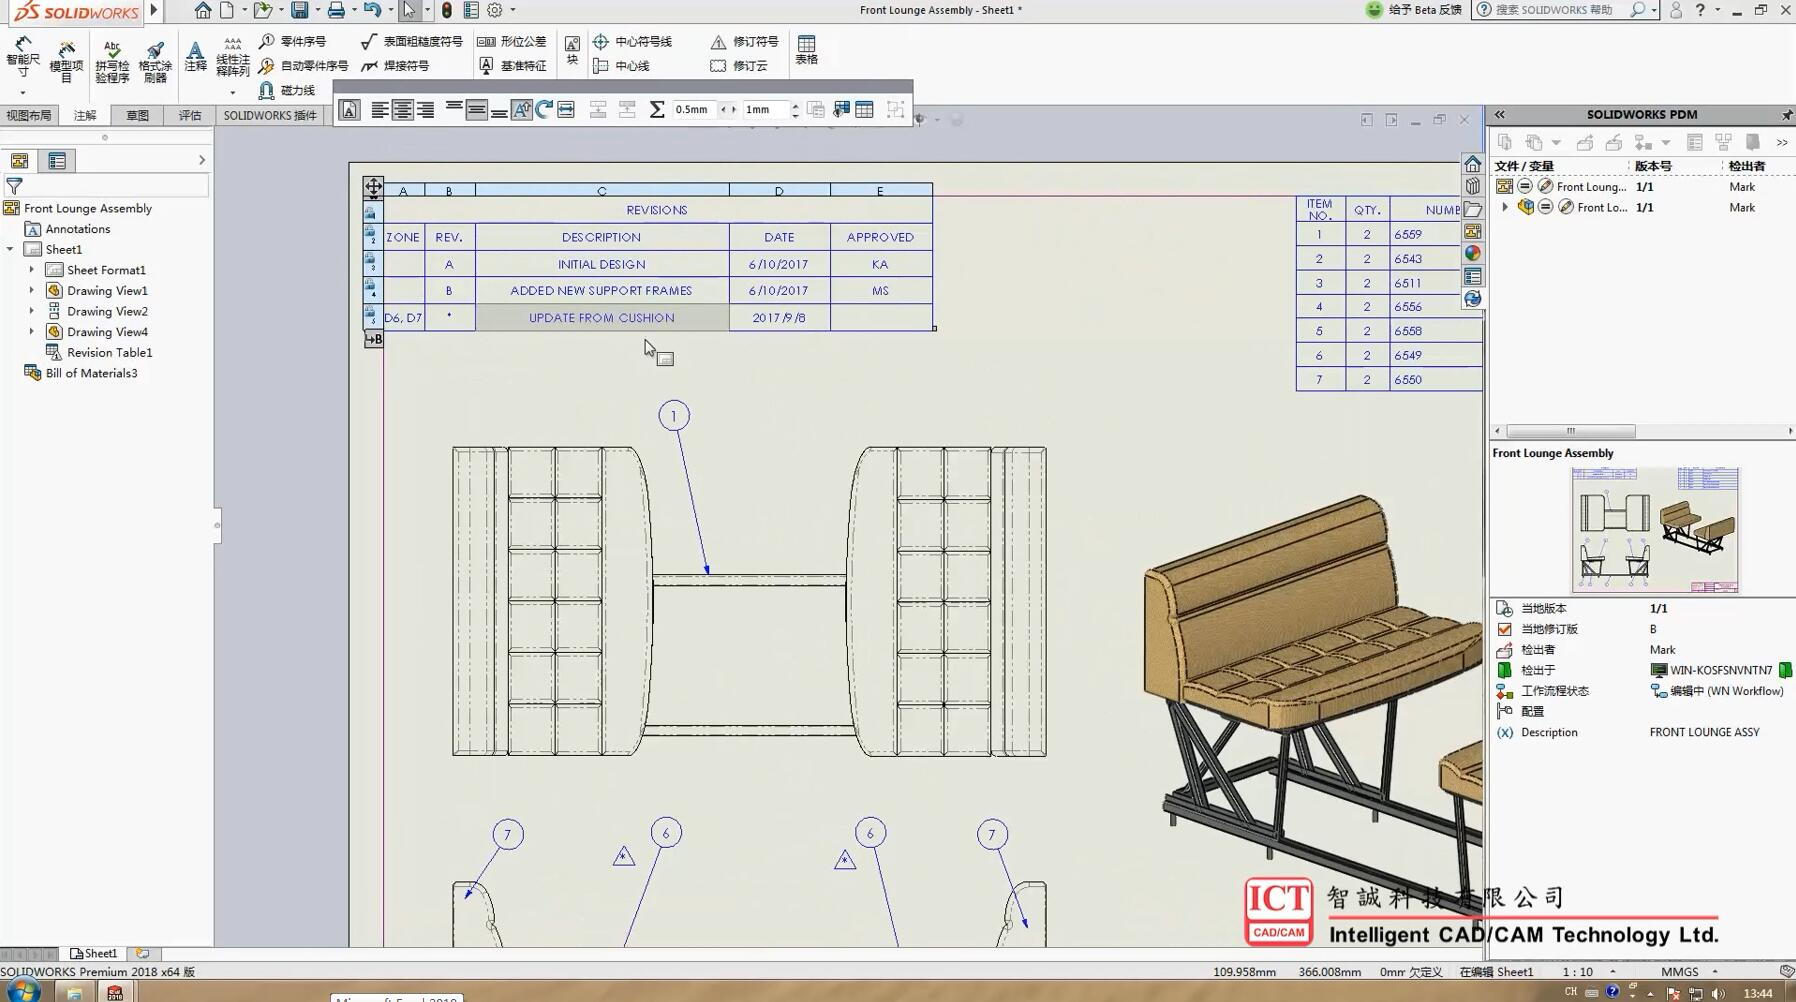 SOLIDWORKS EPDM-修订表集成 - What's New 2018